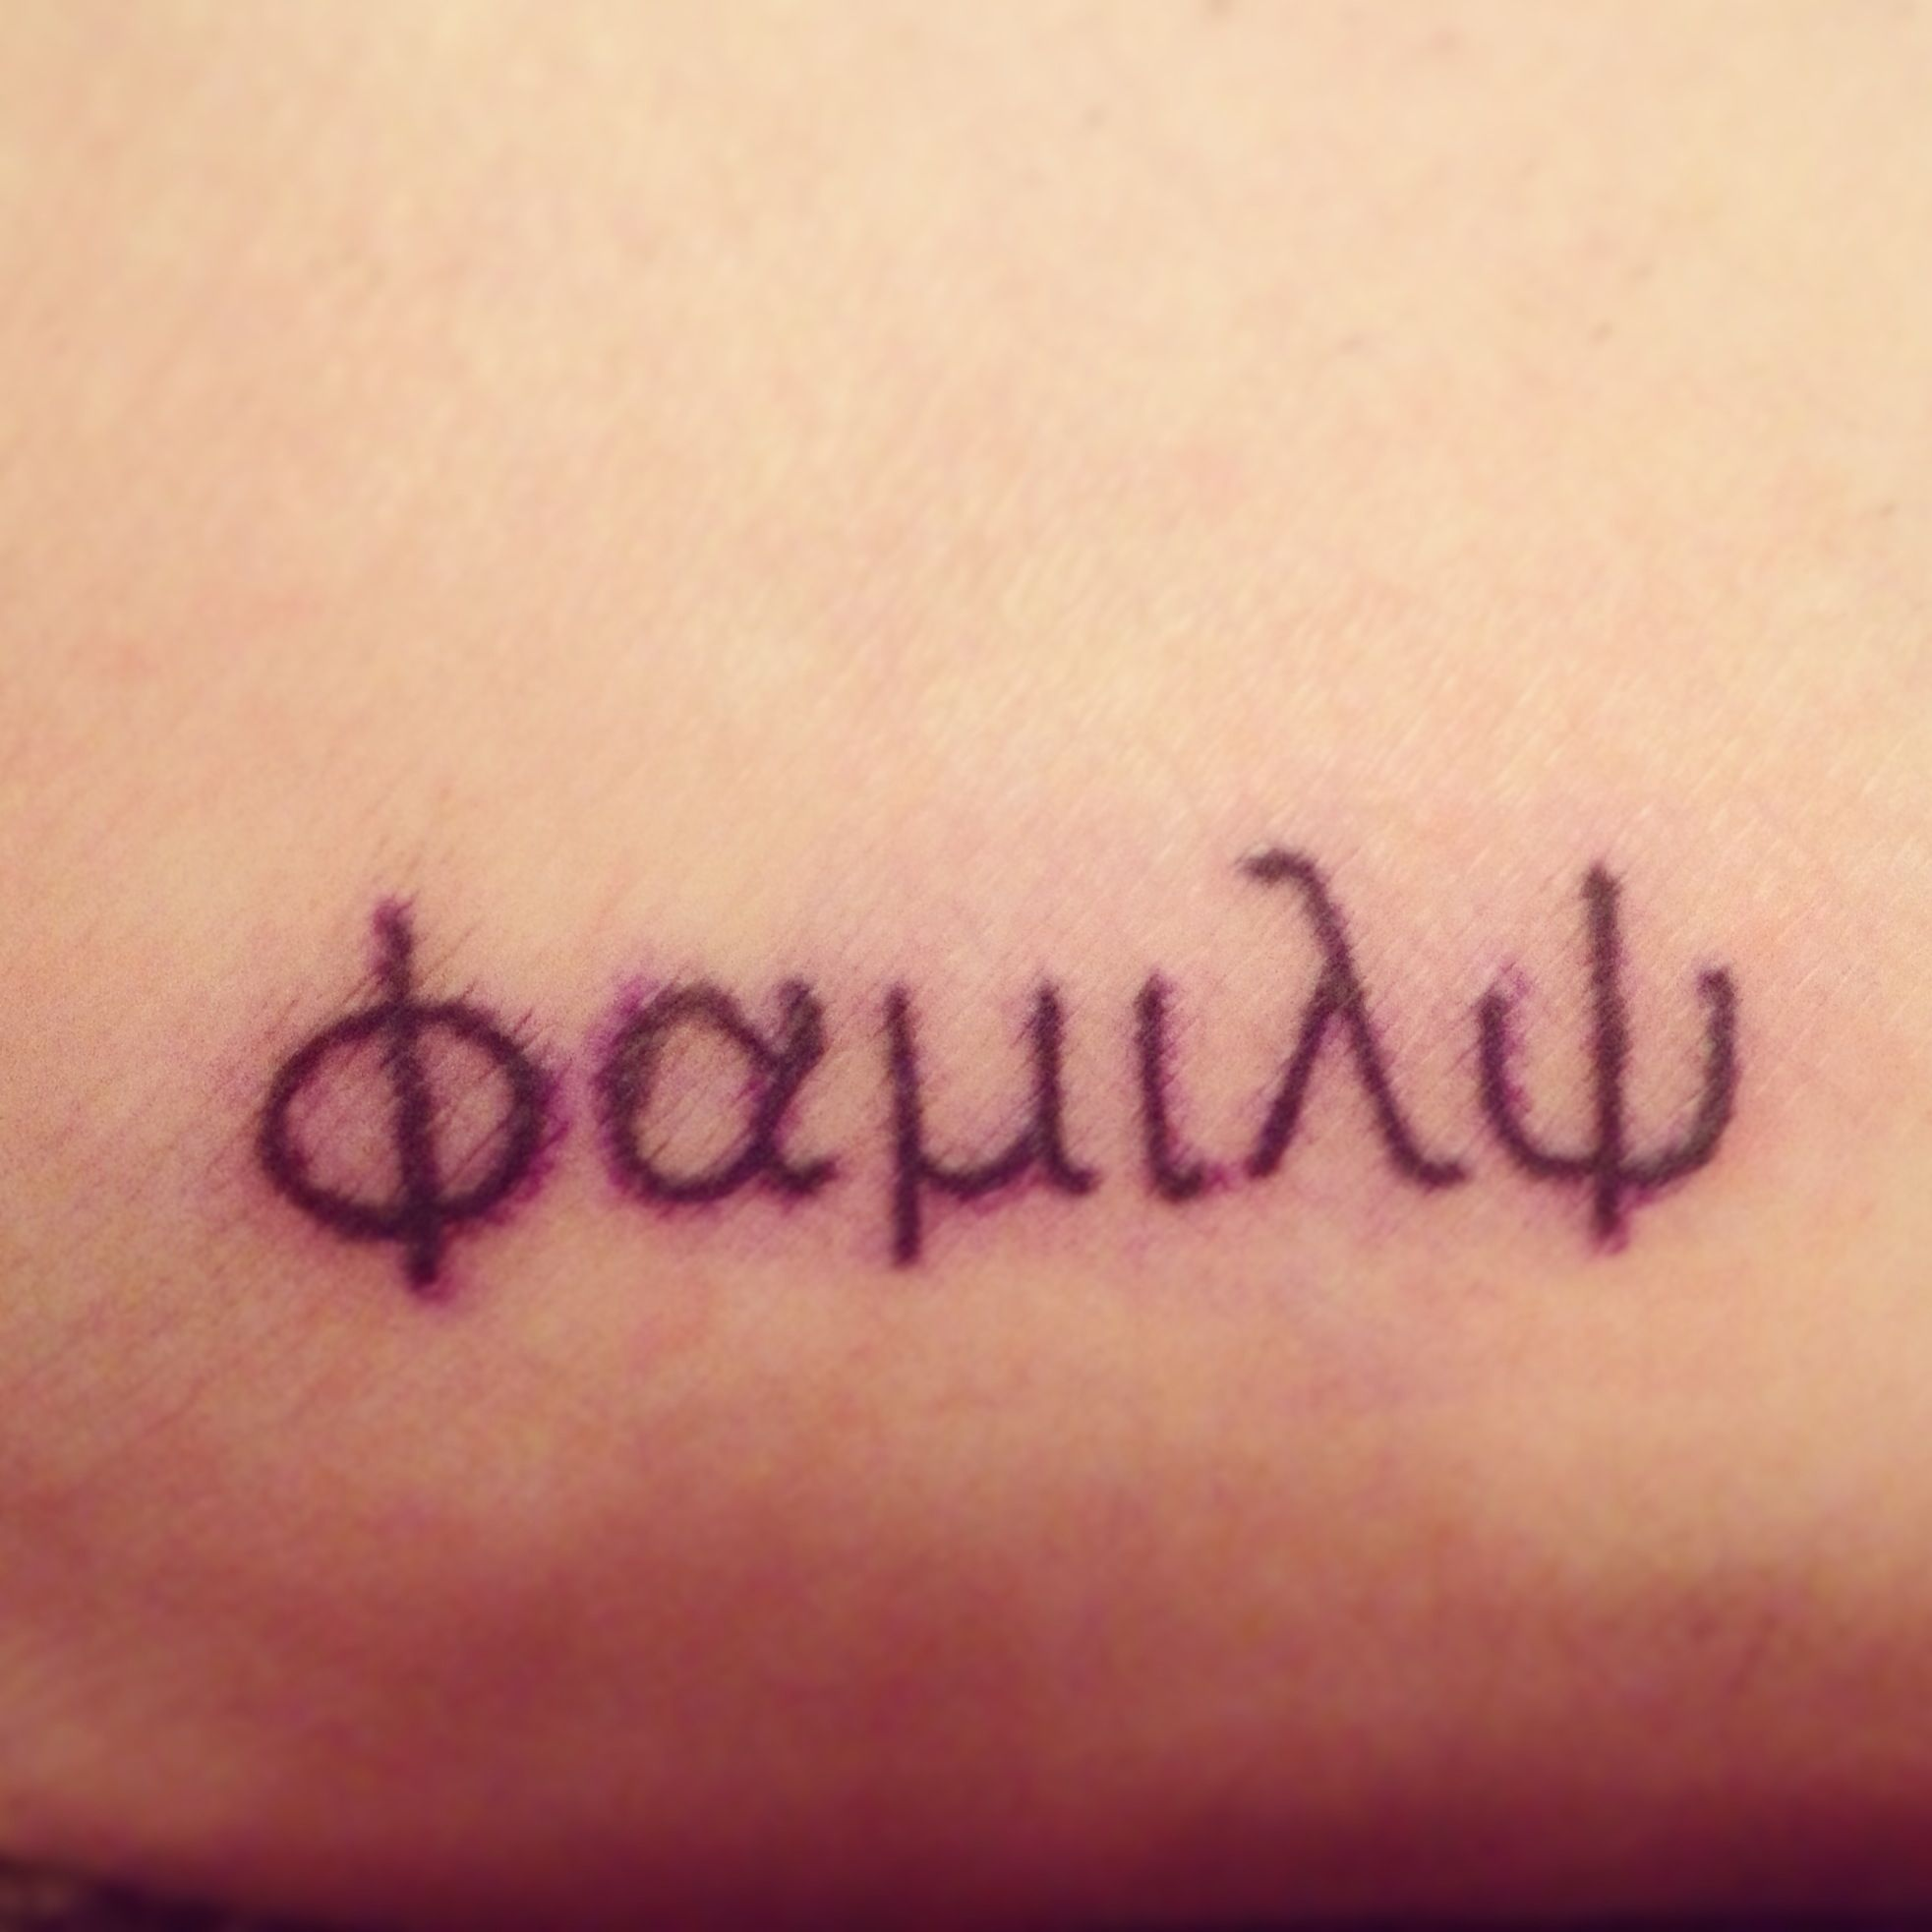 My Tattoo :) 'family' In Greek Letters